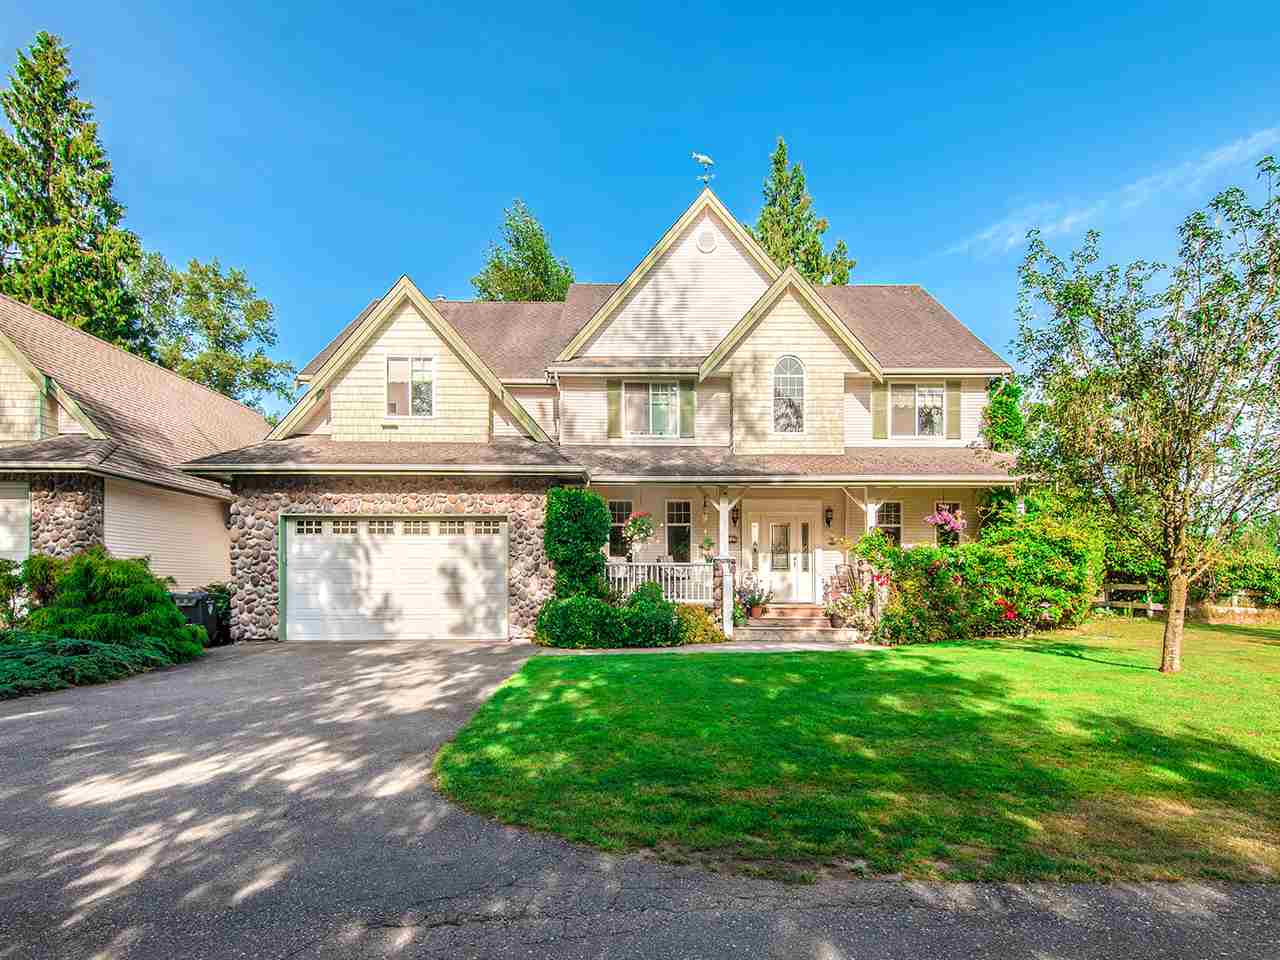 2552 207 STREET - Brookswood Langley House with Acreage for sale, 6 Bedrooms (R2527015) - #1